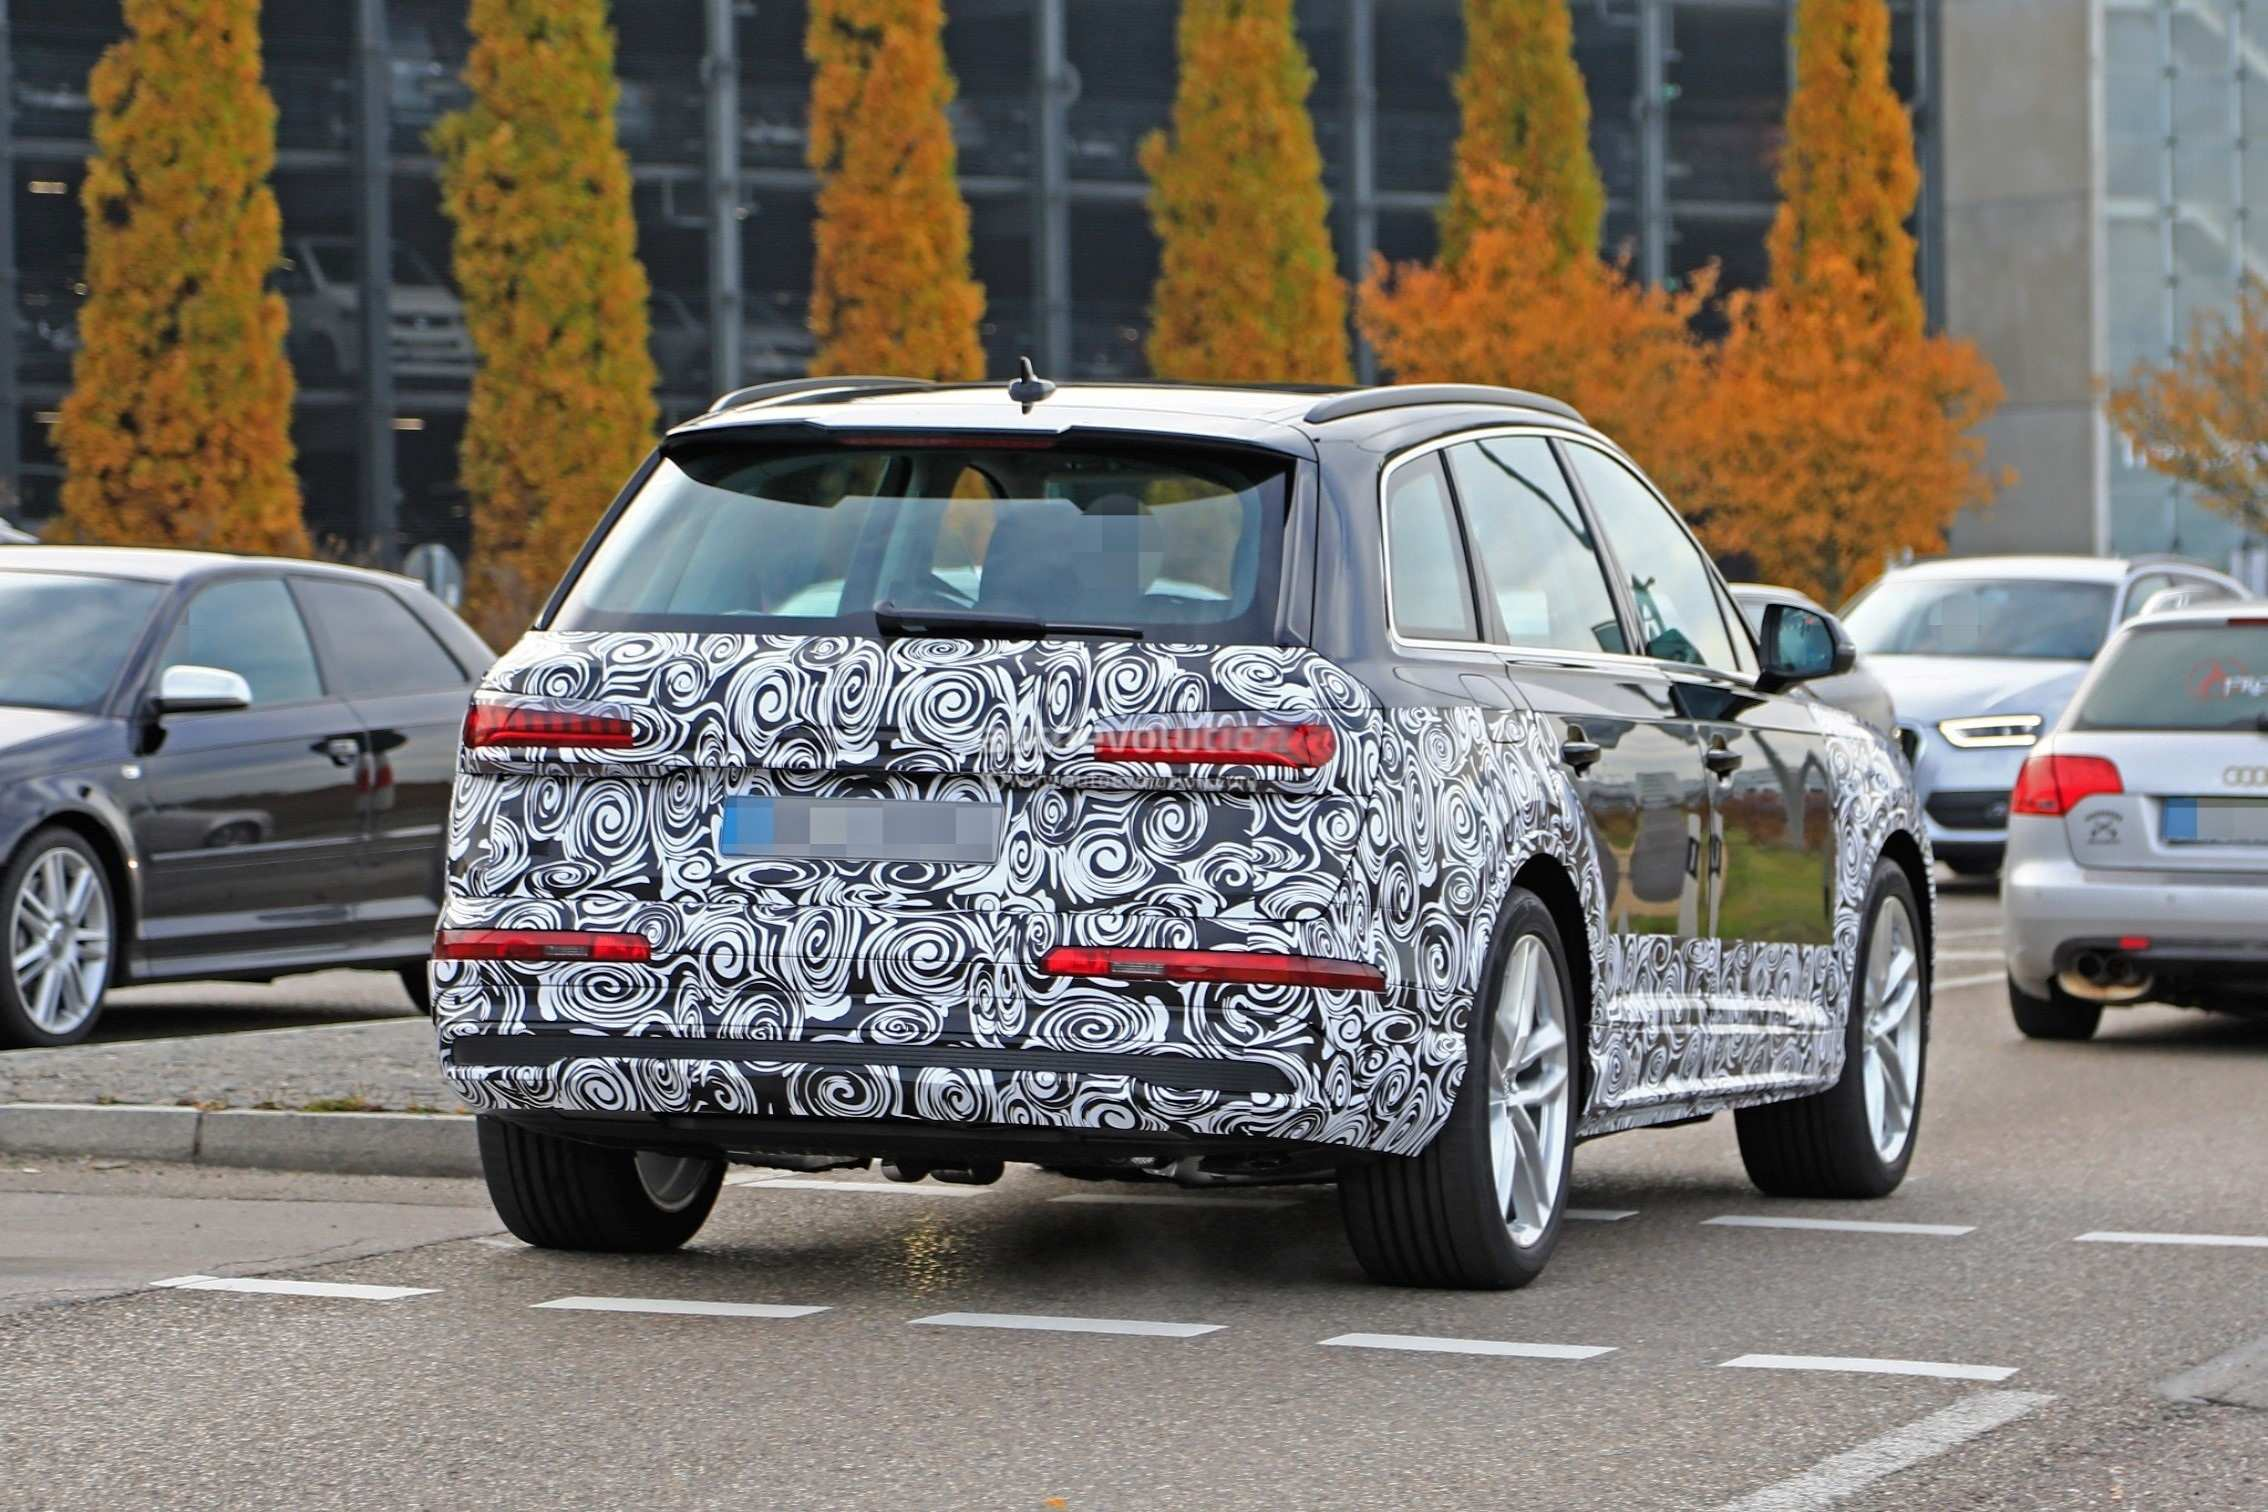 43 New When Does 2020 Audi Q7 Come Out Redesign with When Does 2020 Audi Q7 Come Out